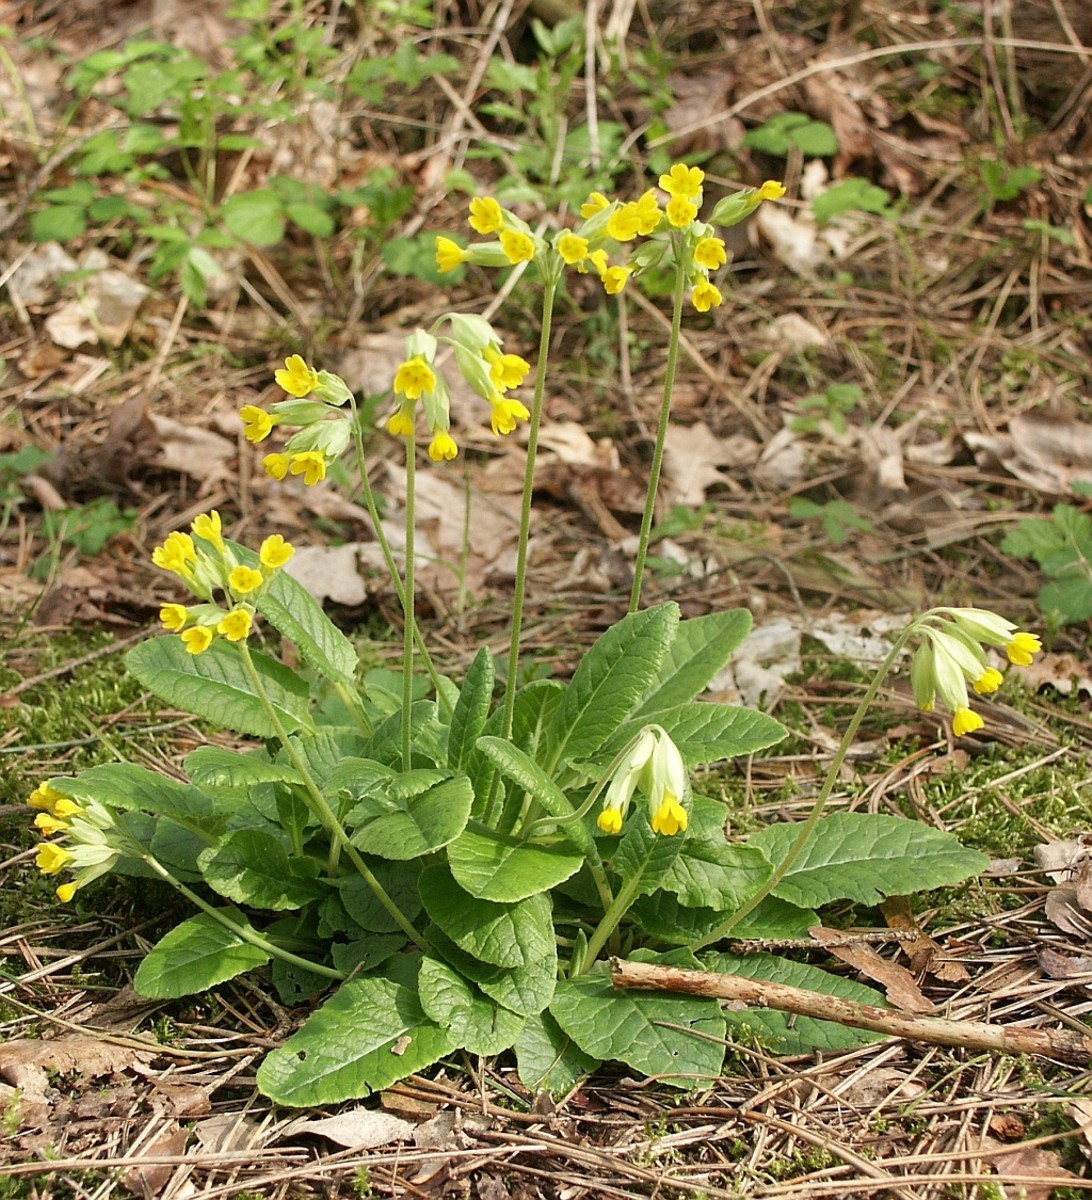 The cowslip